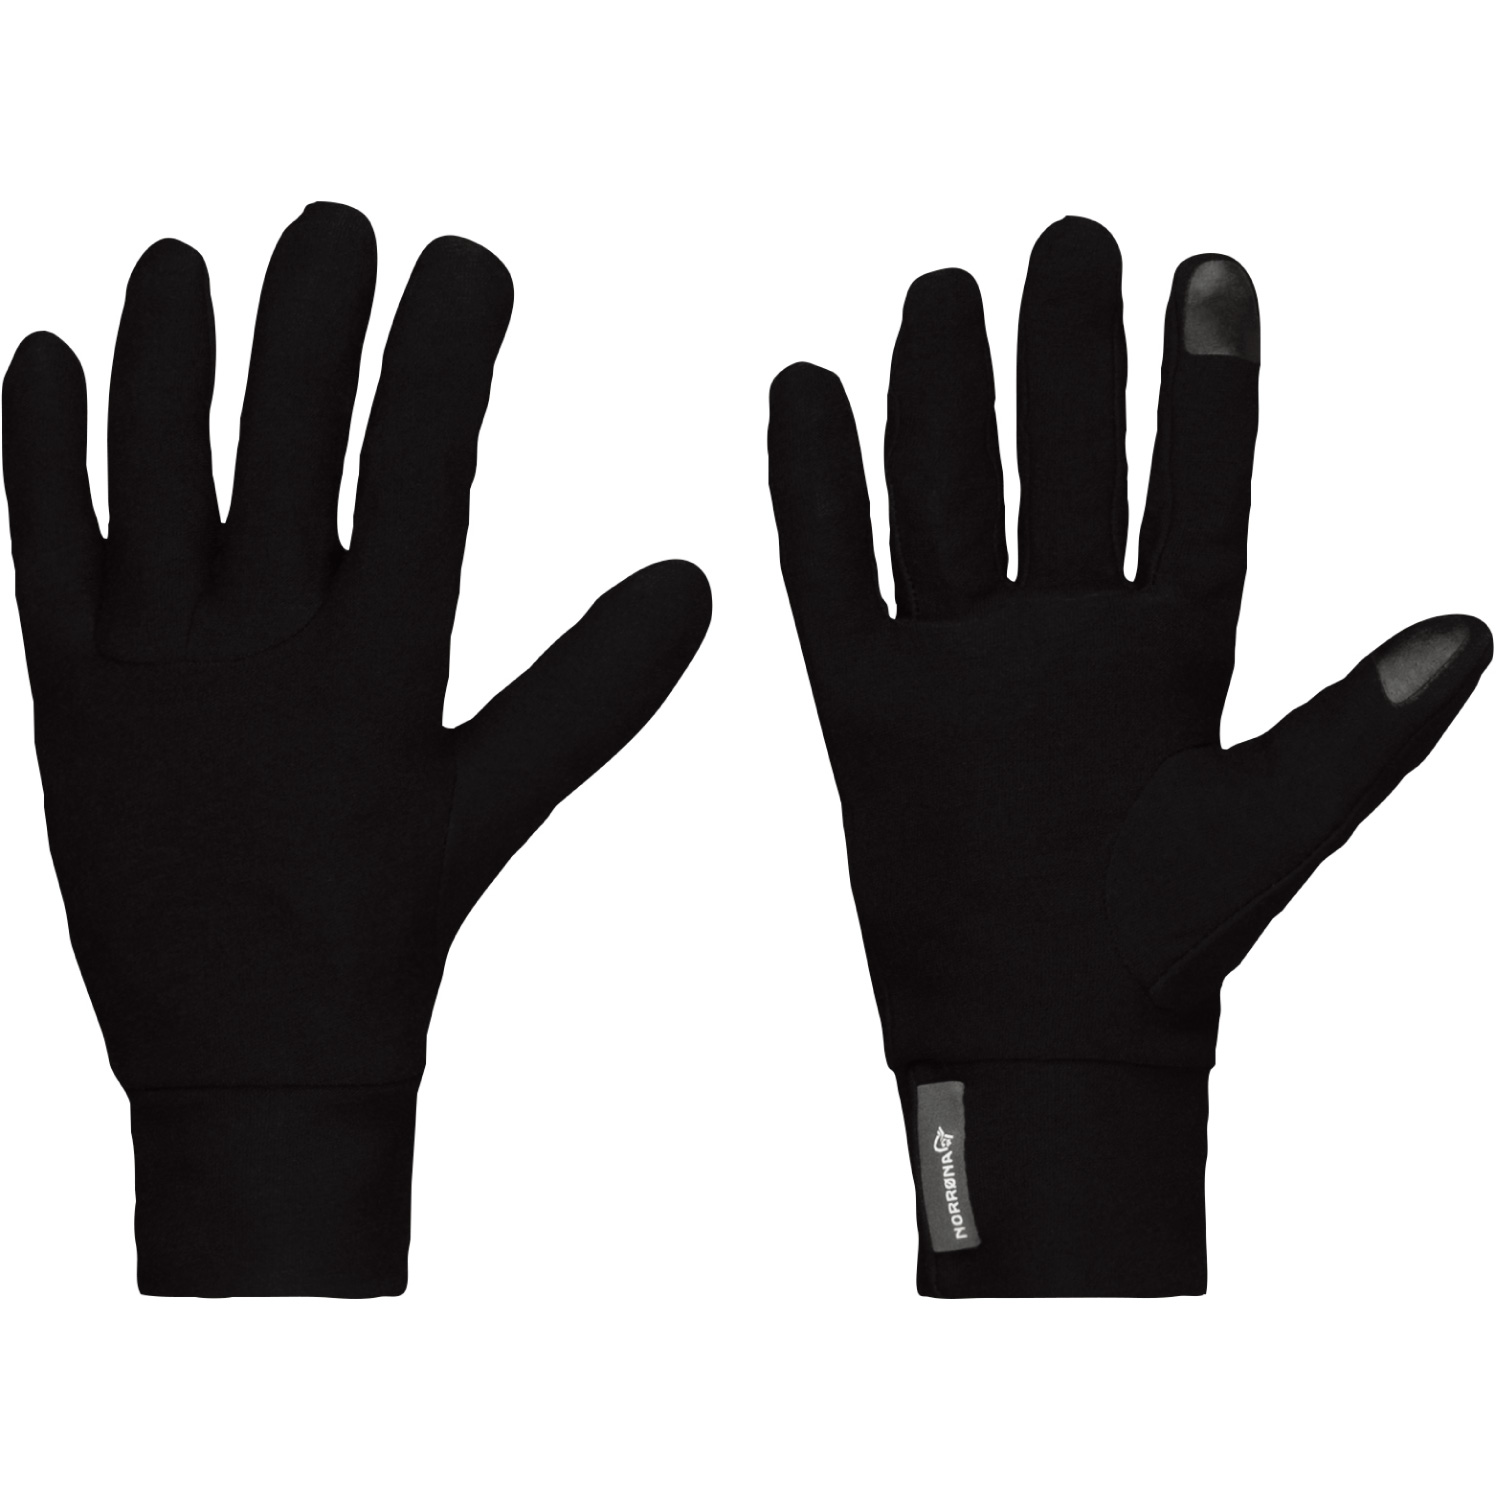 /29 Merino Wool Liner Gloves (M/W)